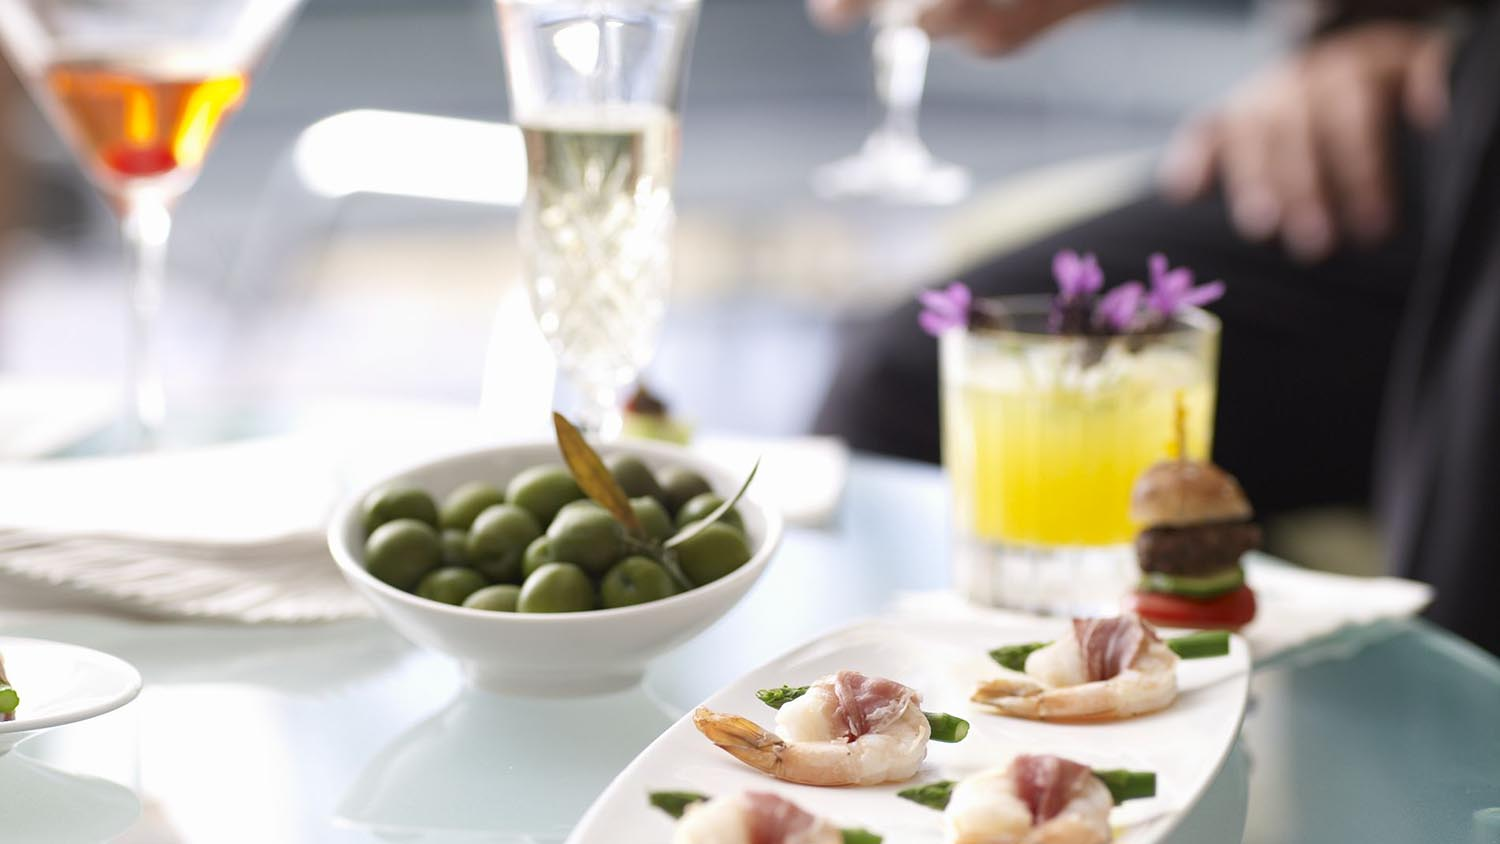 Contact CuisineStyle Today to Talk About Your Next Catered Event